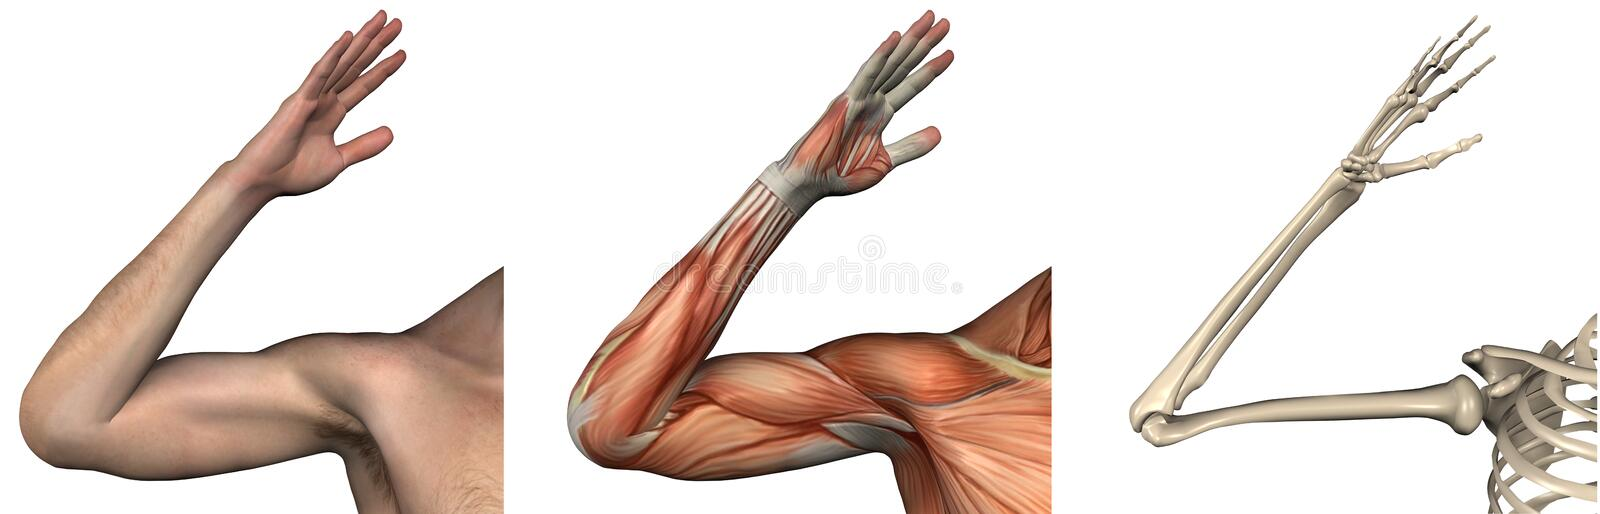 Anatomical Overlays -right arm vector illustration